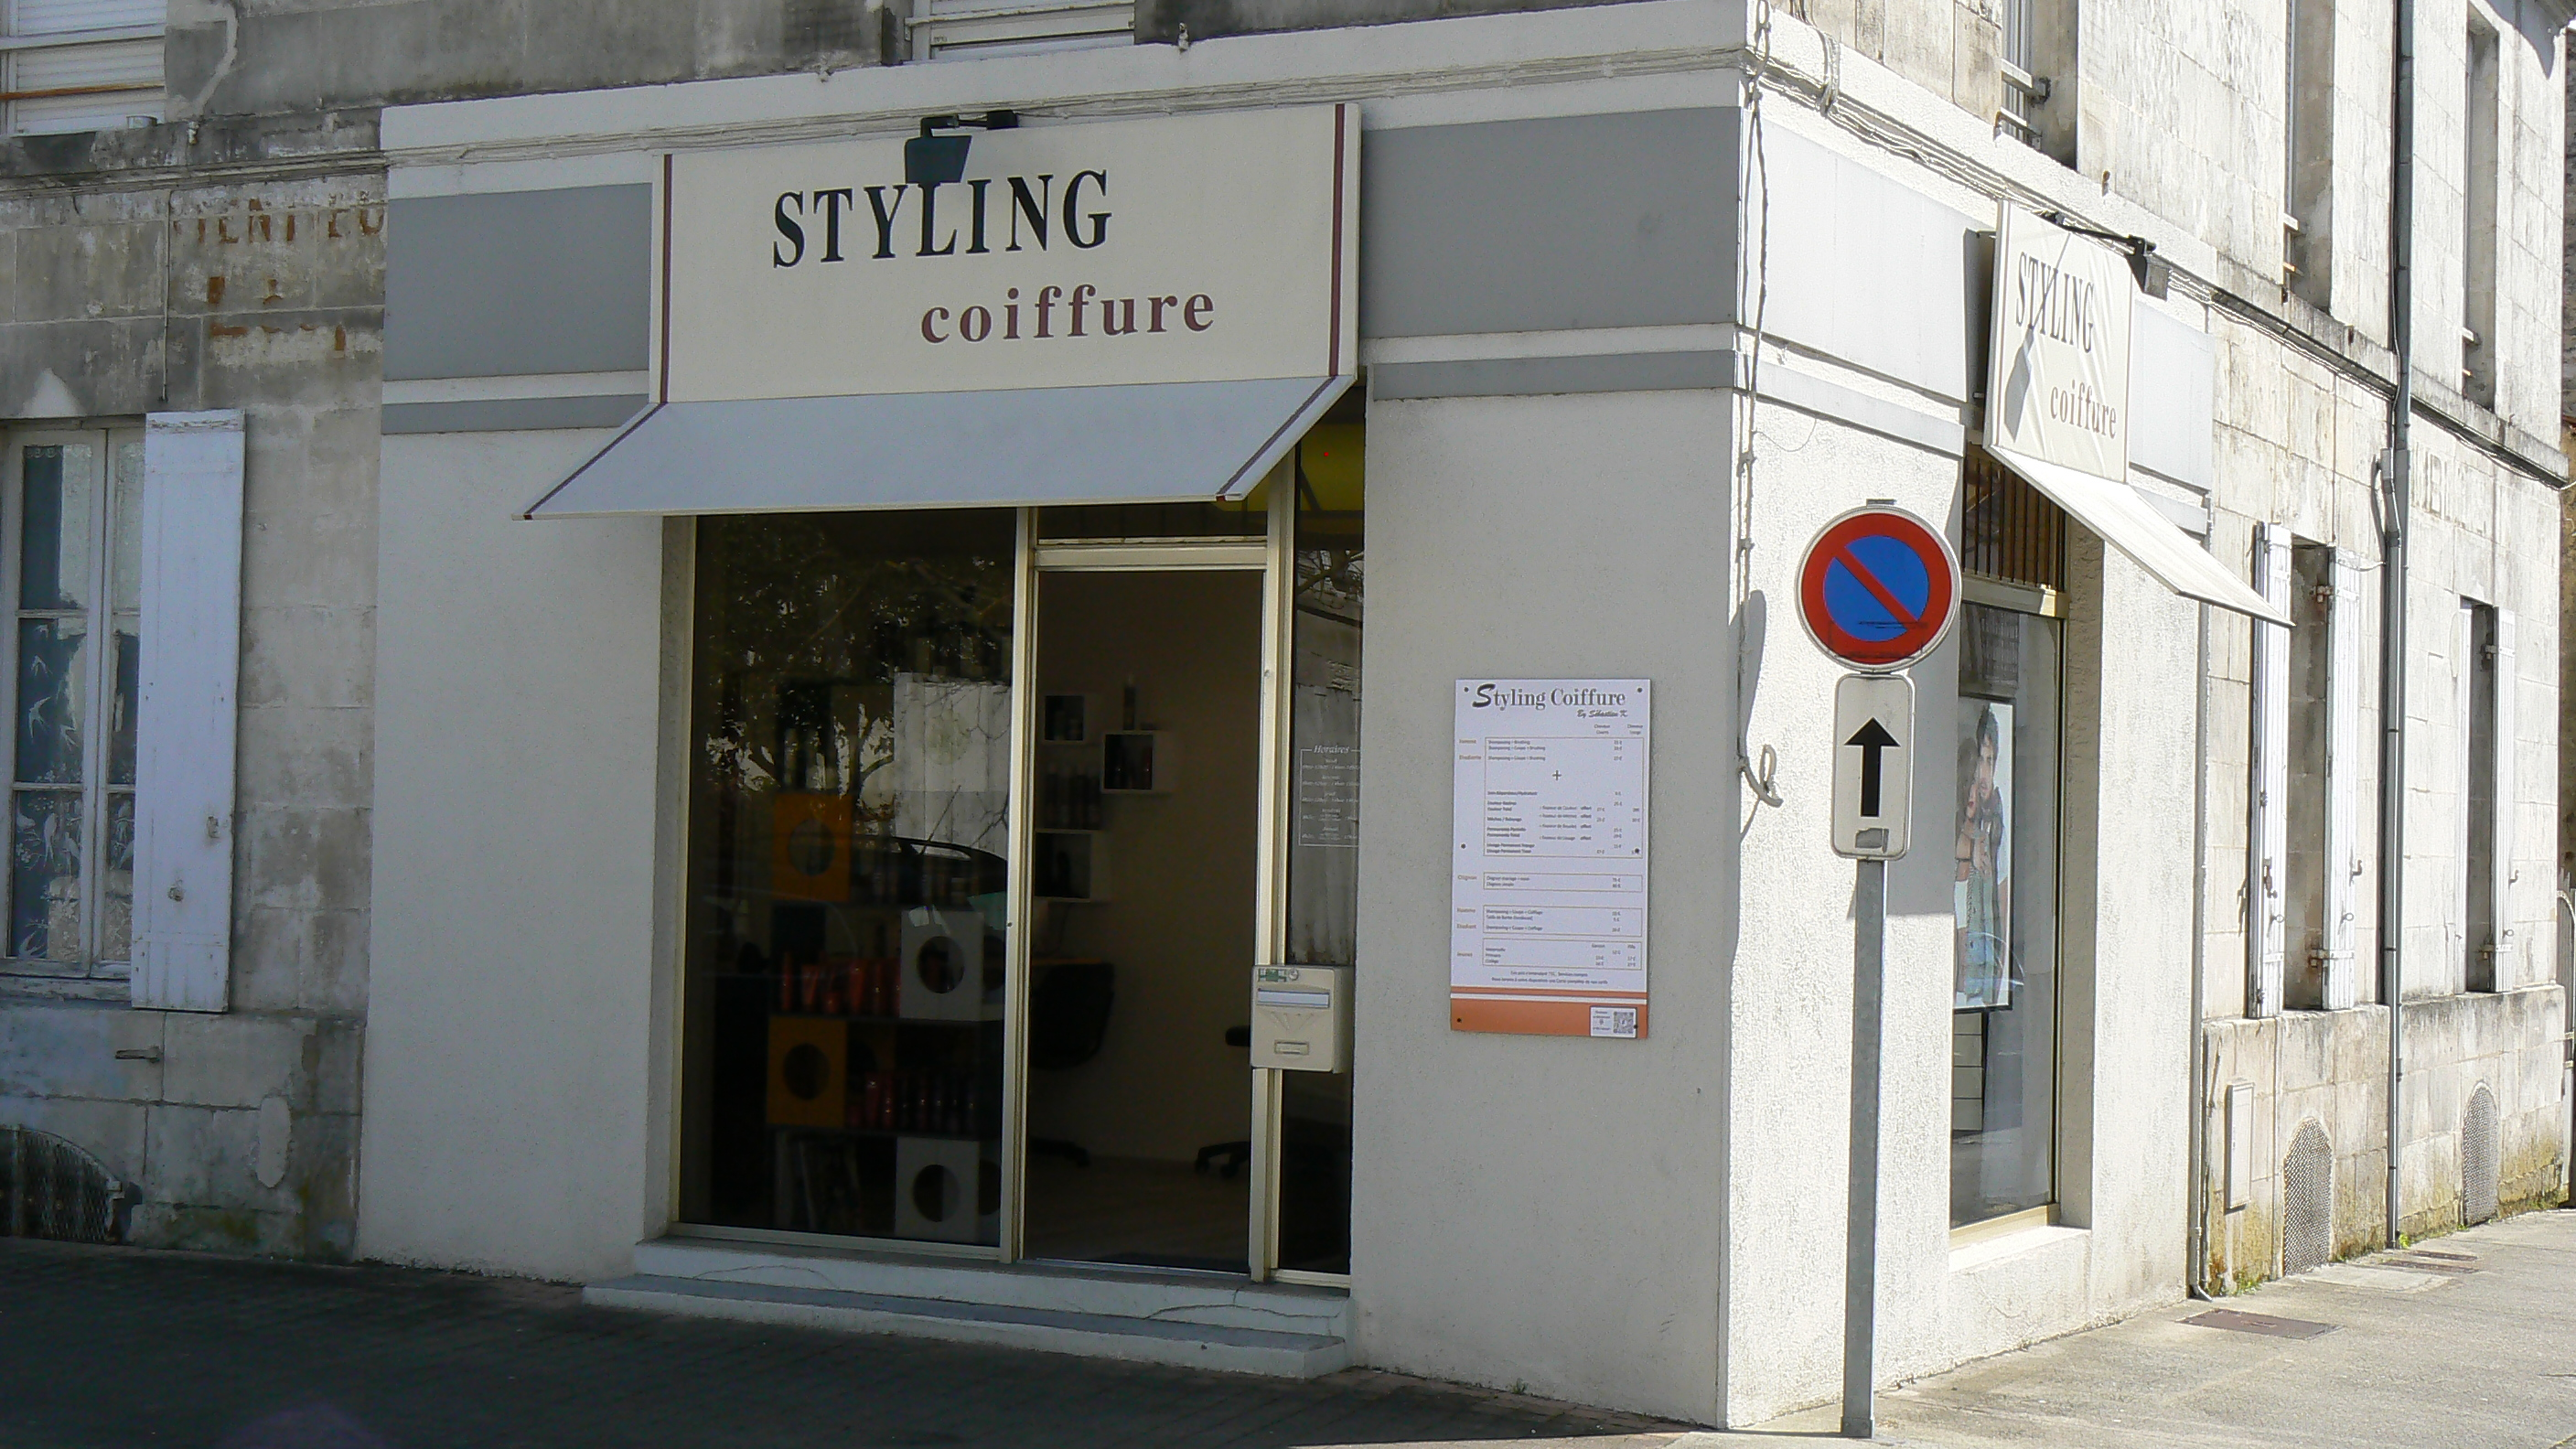 Styling coiffure by Sebastien k. - Saintes